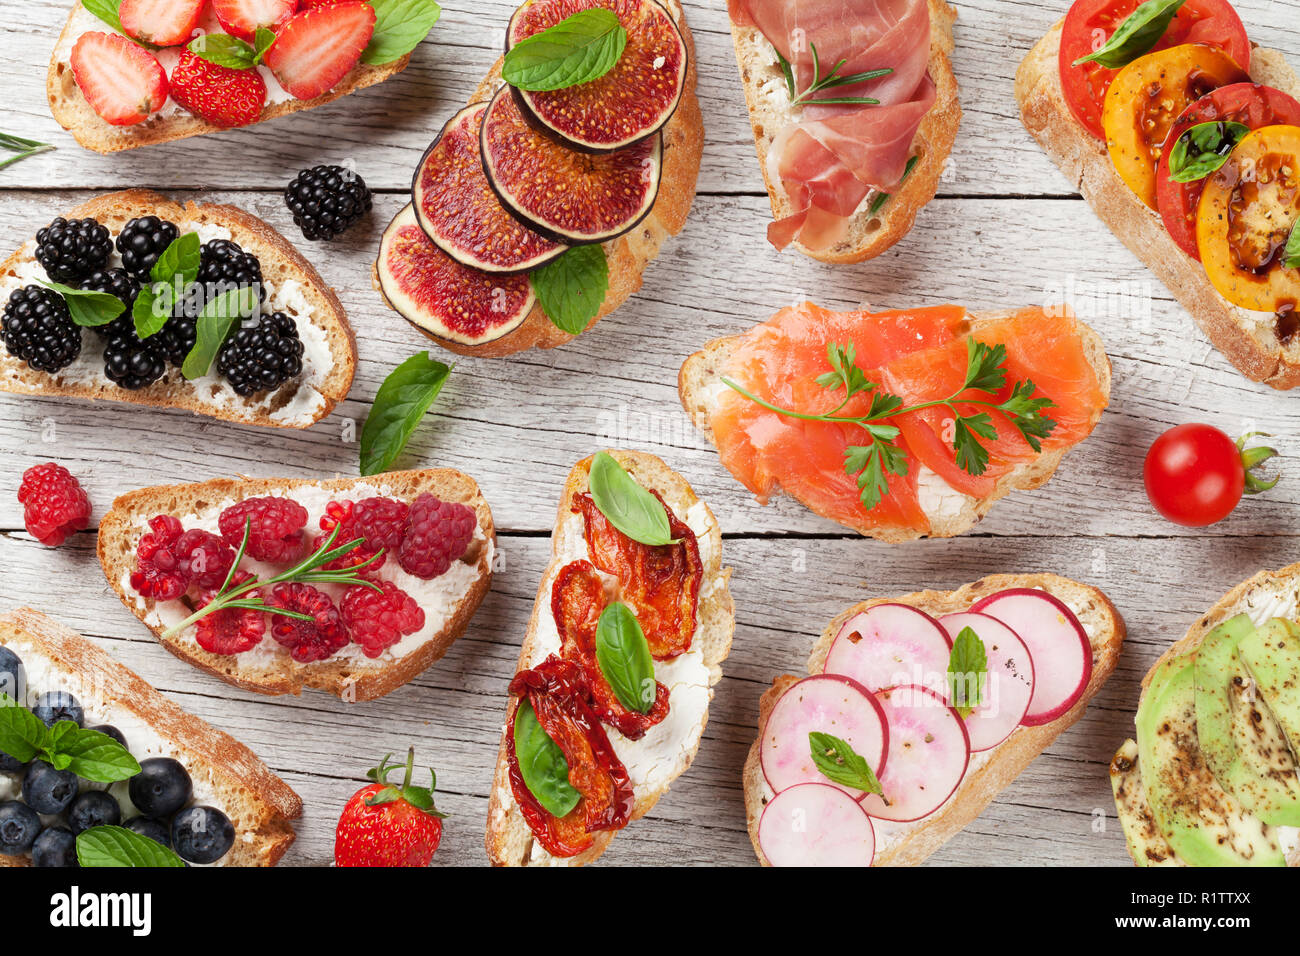 Brushetta or traditional spanish tapas. Appetizers italian antipasti snacks set on wooden board. Top view and flat lay - Stock Image